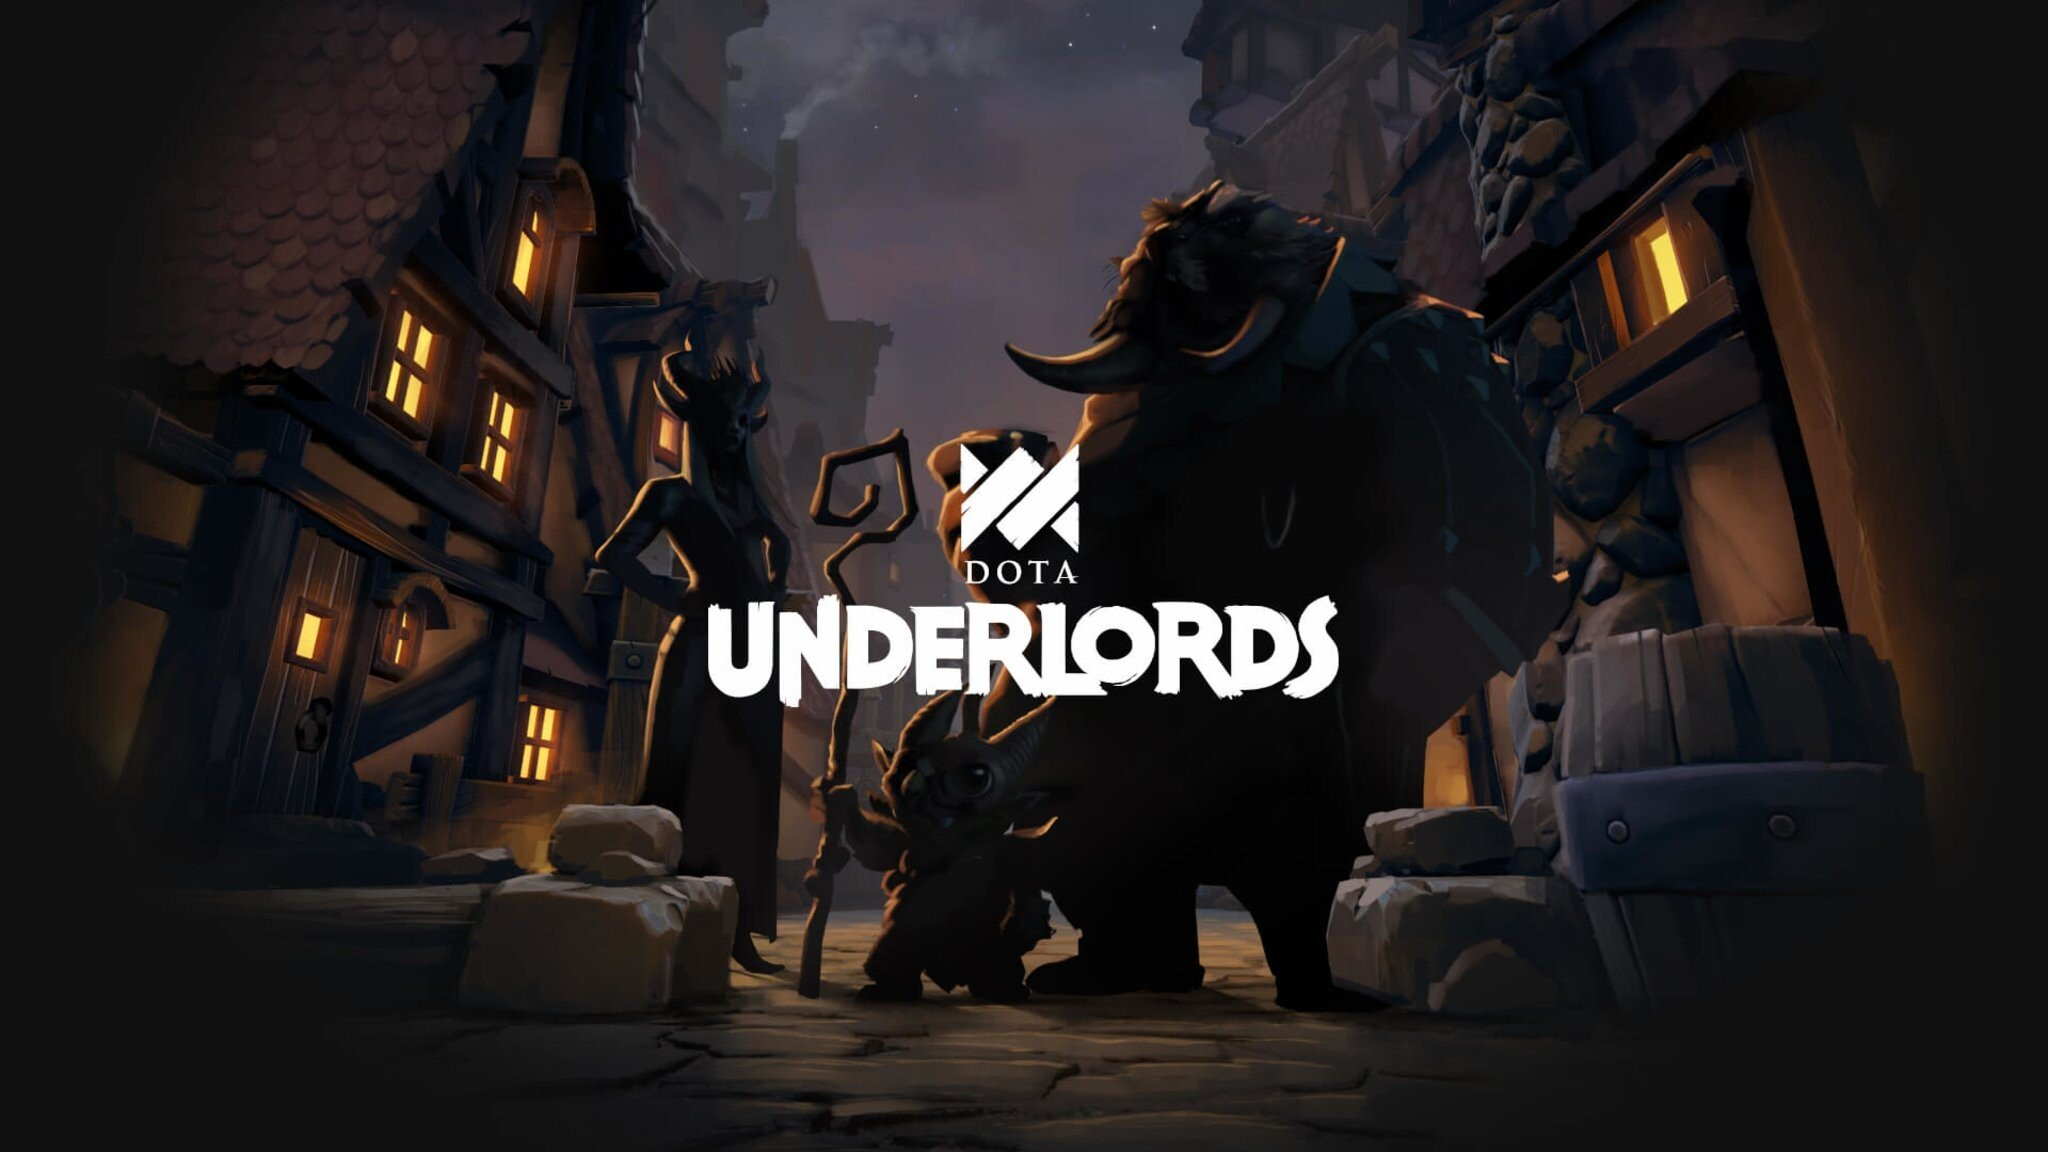 Dota Underlords' May 28 update changes shop tier odds and fixes bugs